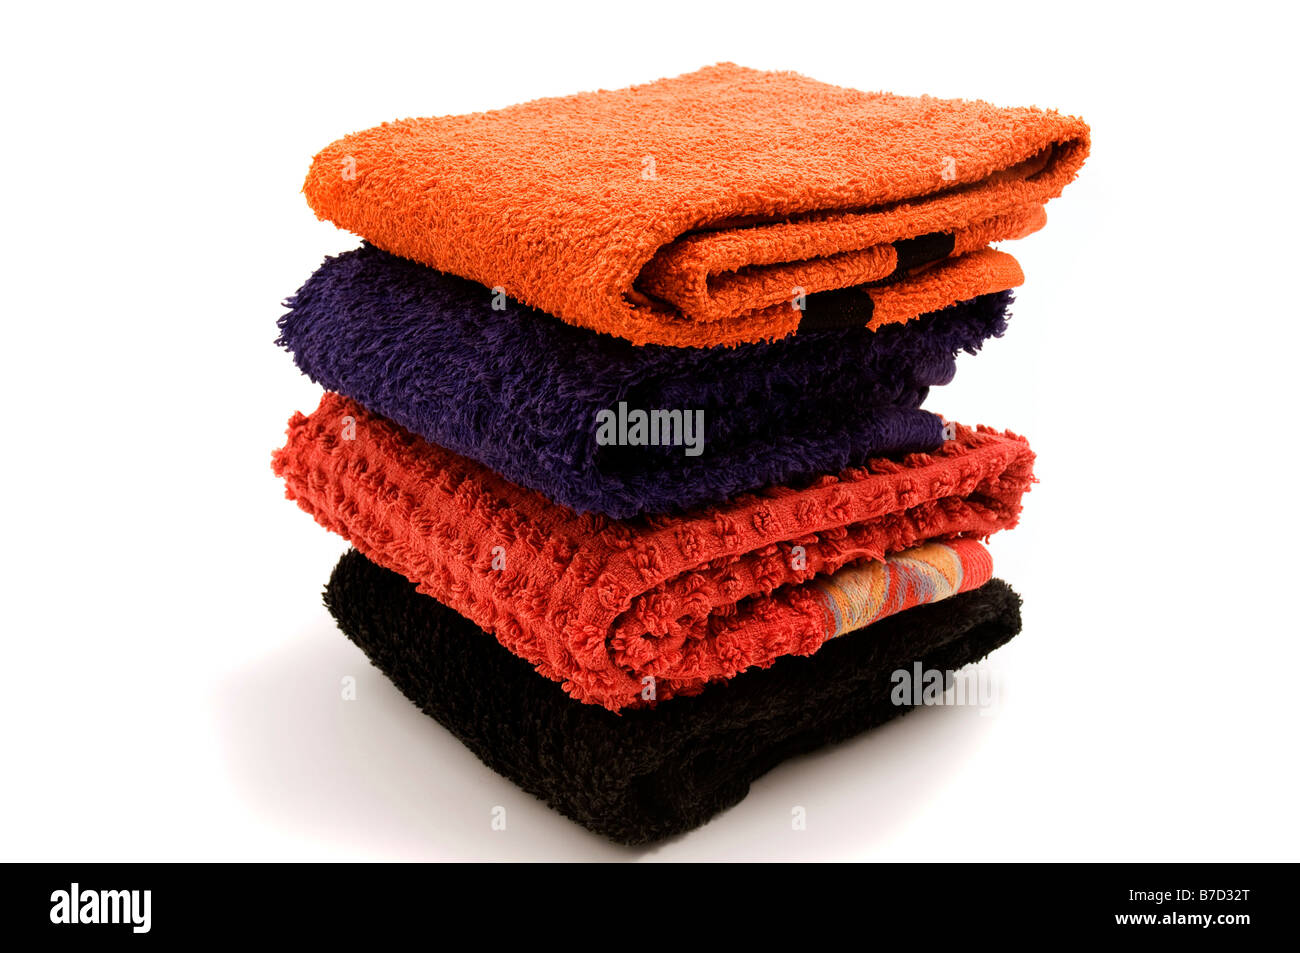 Piled towels on a white background - Stock Image